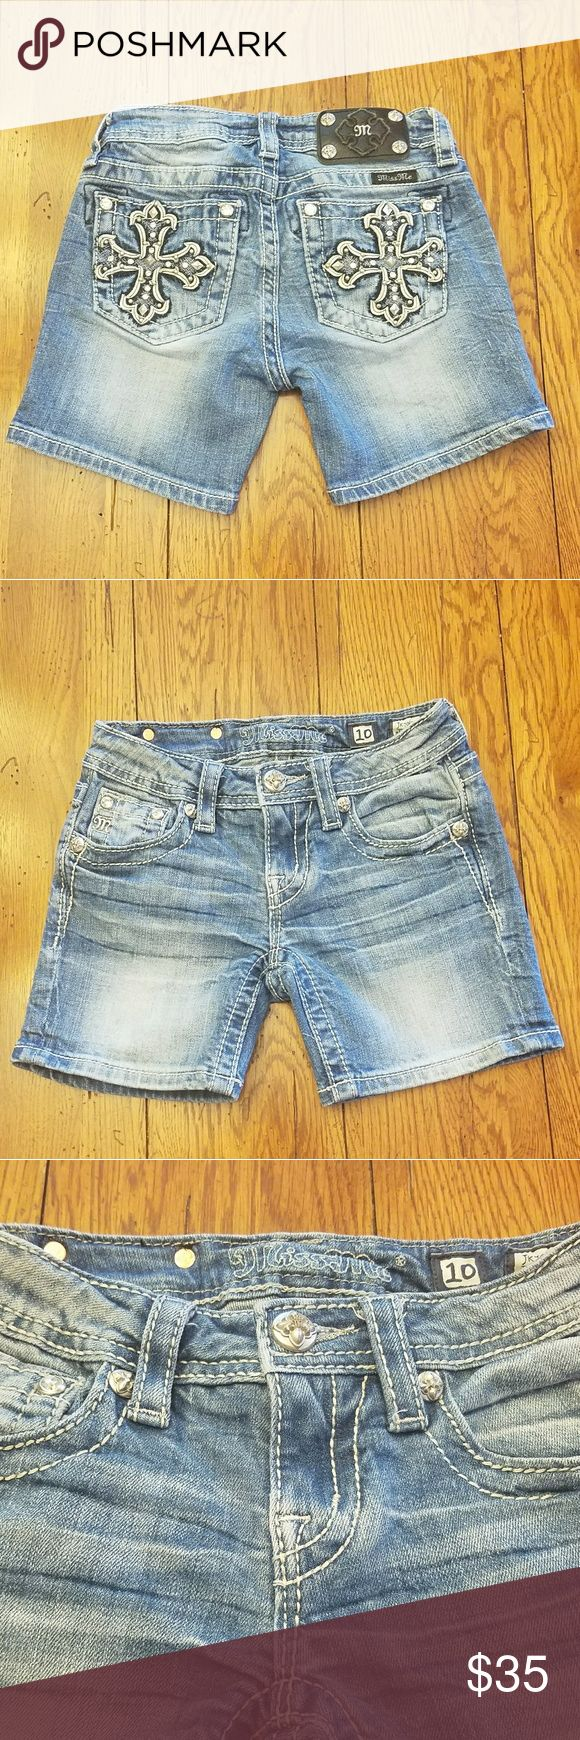 Girls Miss Me Jeans Shorts Size 10 Excellent Condition  NO STAINS  ALL STONES ATTACHED Miss Me Bottoms Shorts